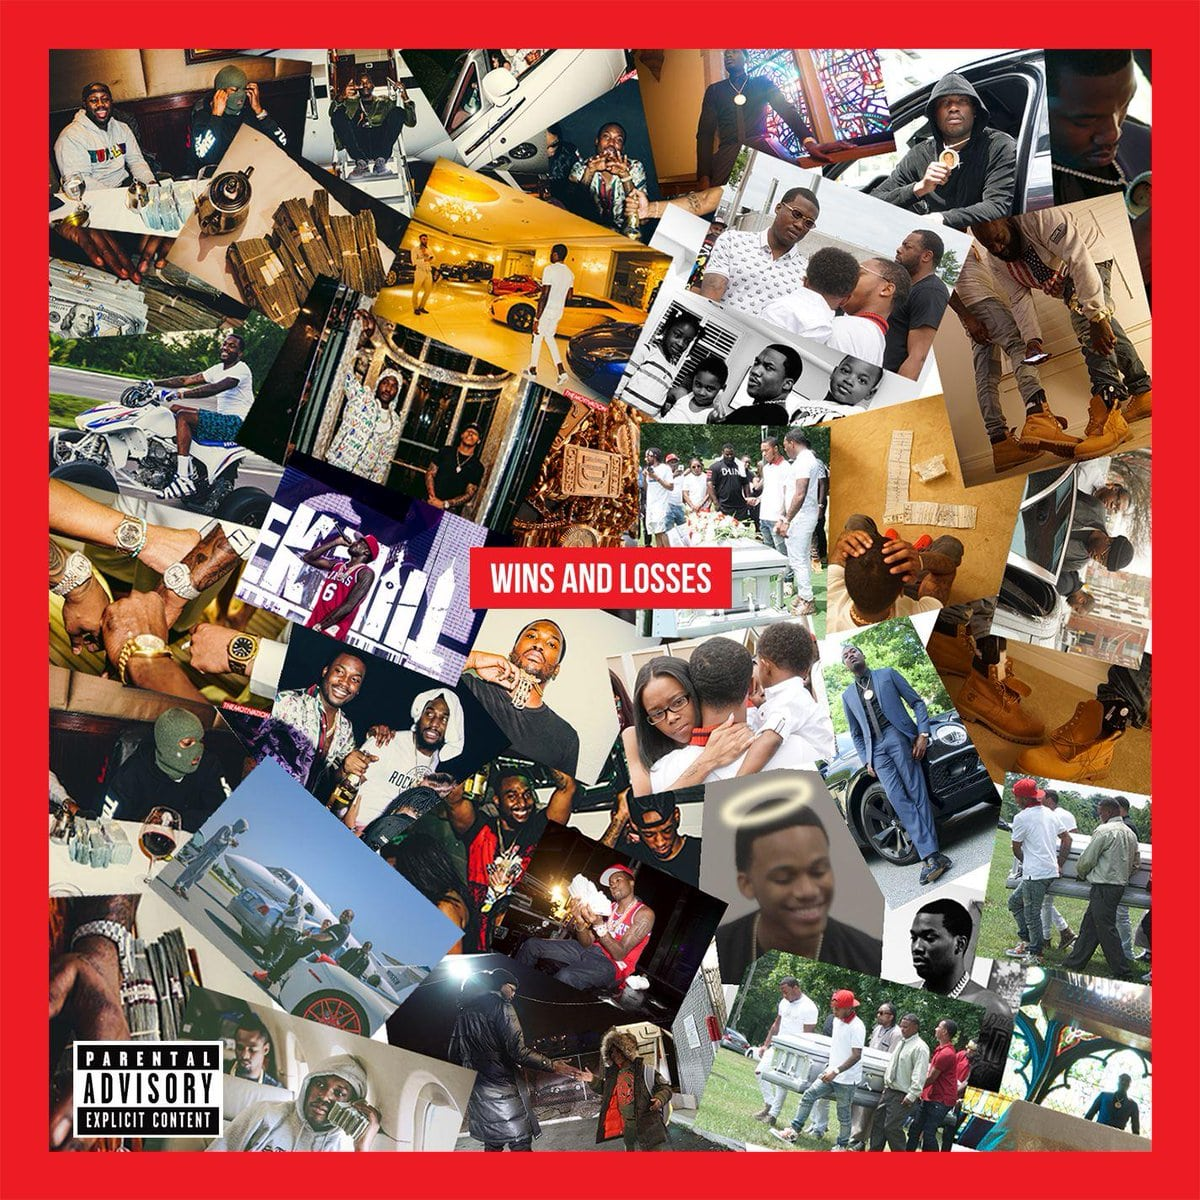 Listen to Meek Mill's new album 'Wins & Losses.' https://t.co/PhgY...